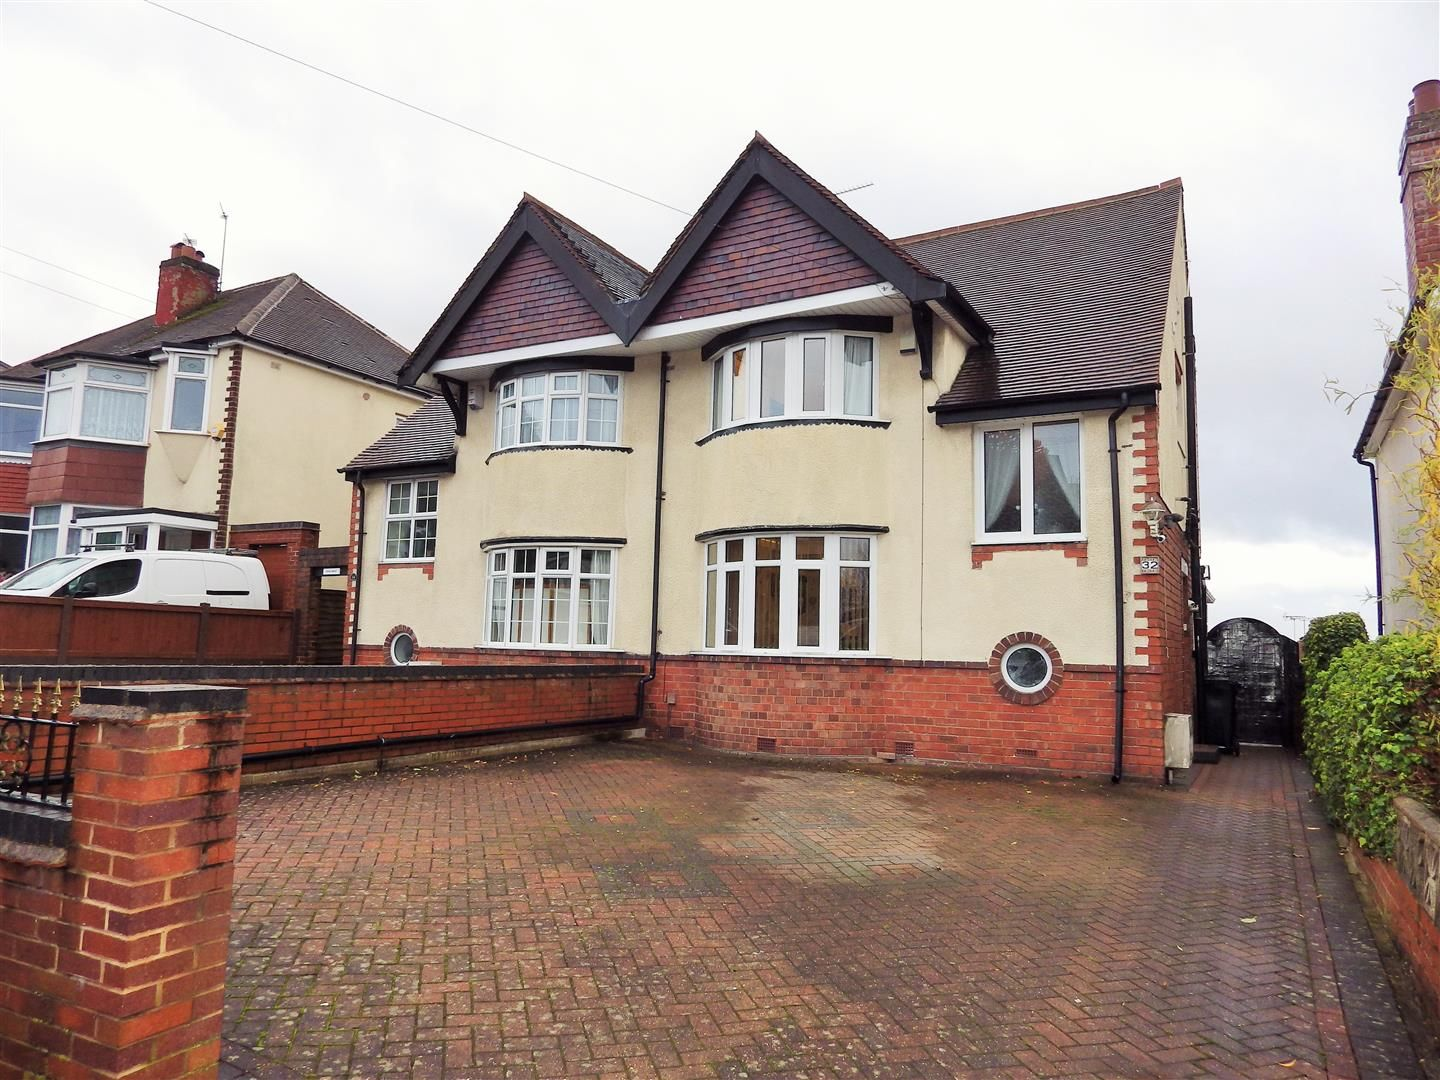 3 bed semi-detached for sale - Property Image 1